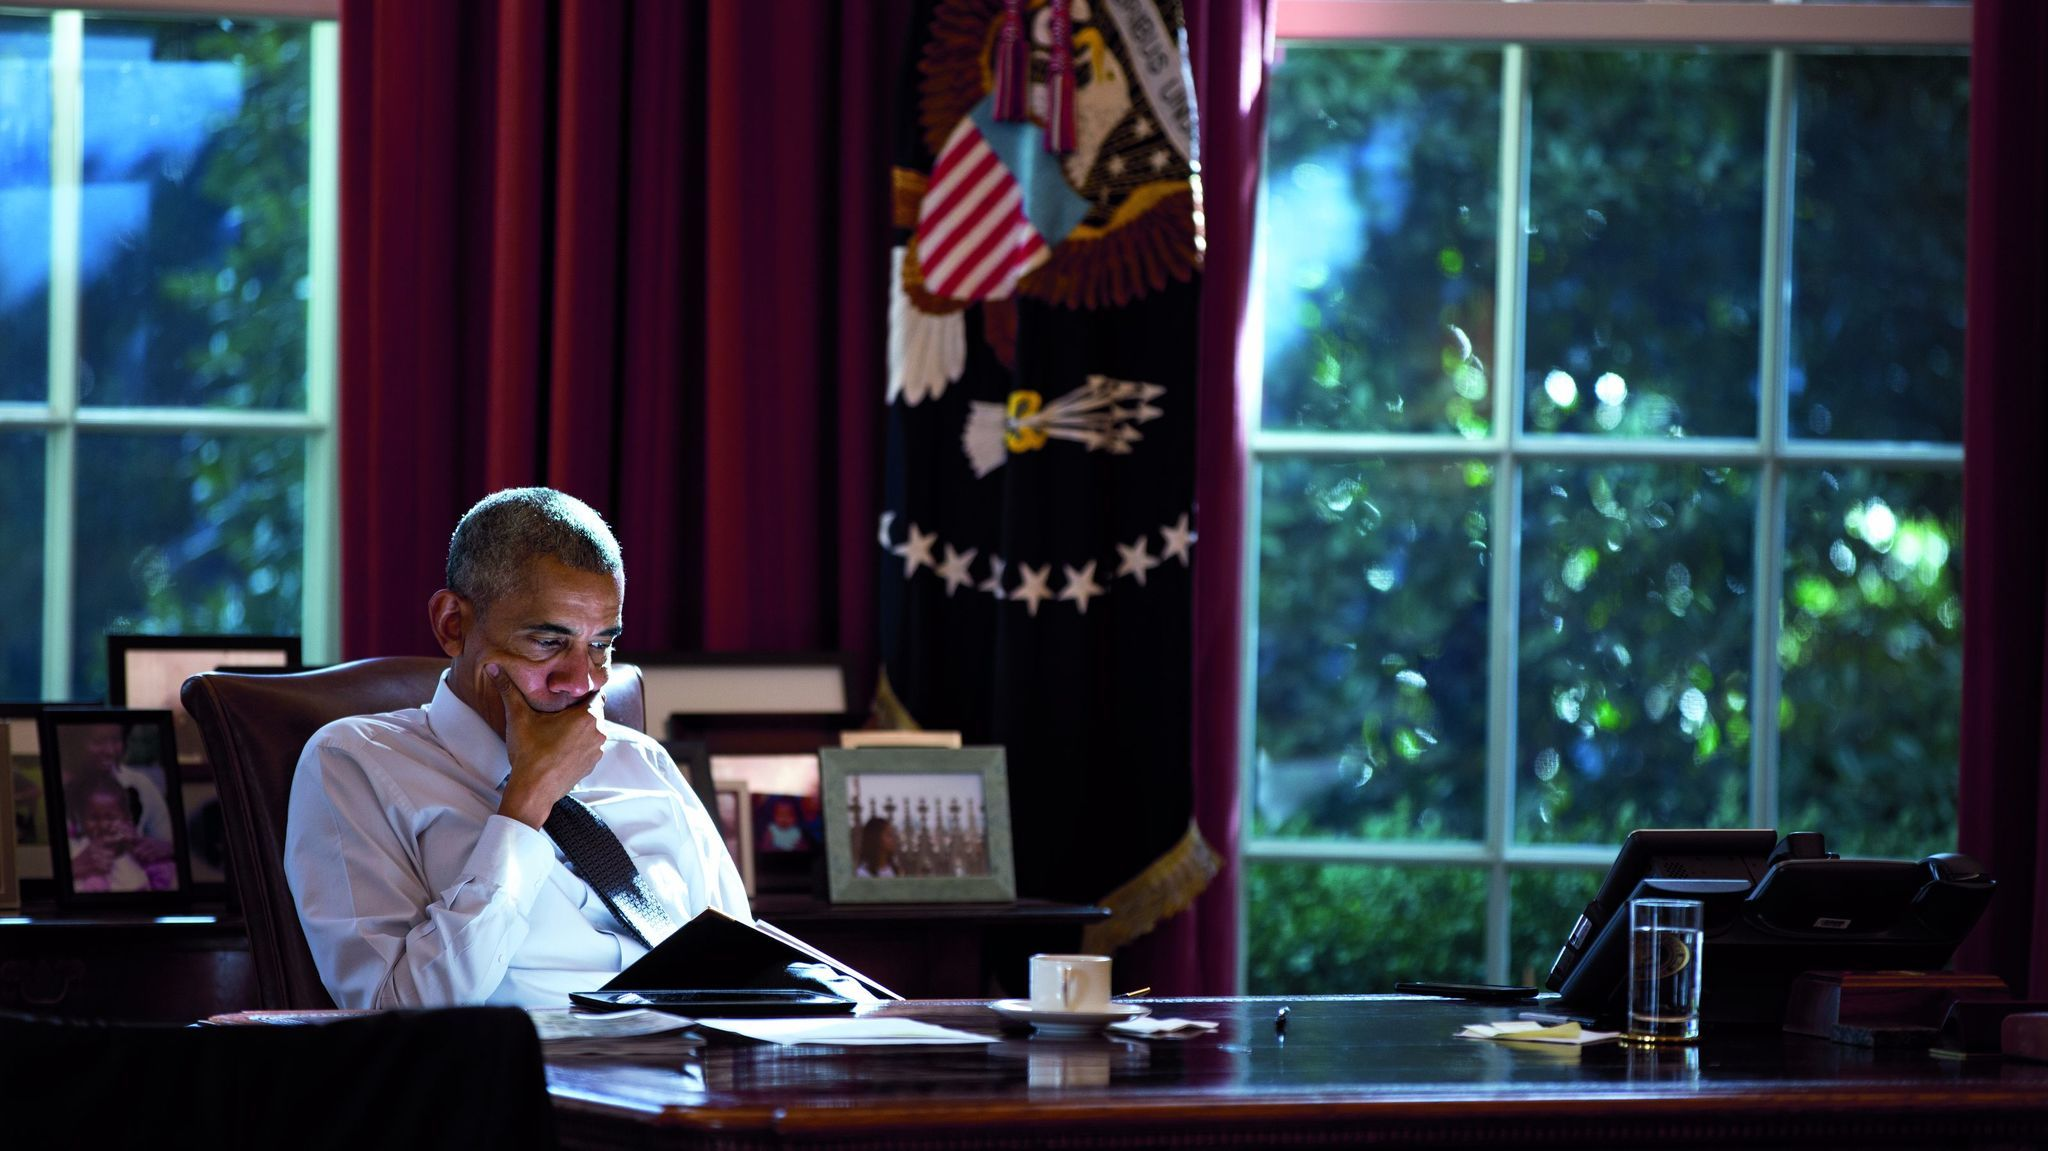 President Barack Obama works at the Resolute Desk in the Oval Office, Oct. 14, 2016. Credit: White H